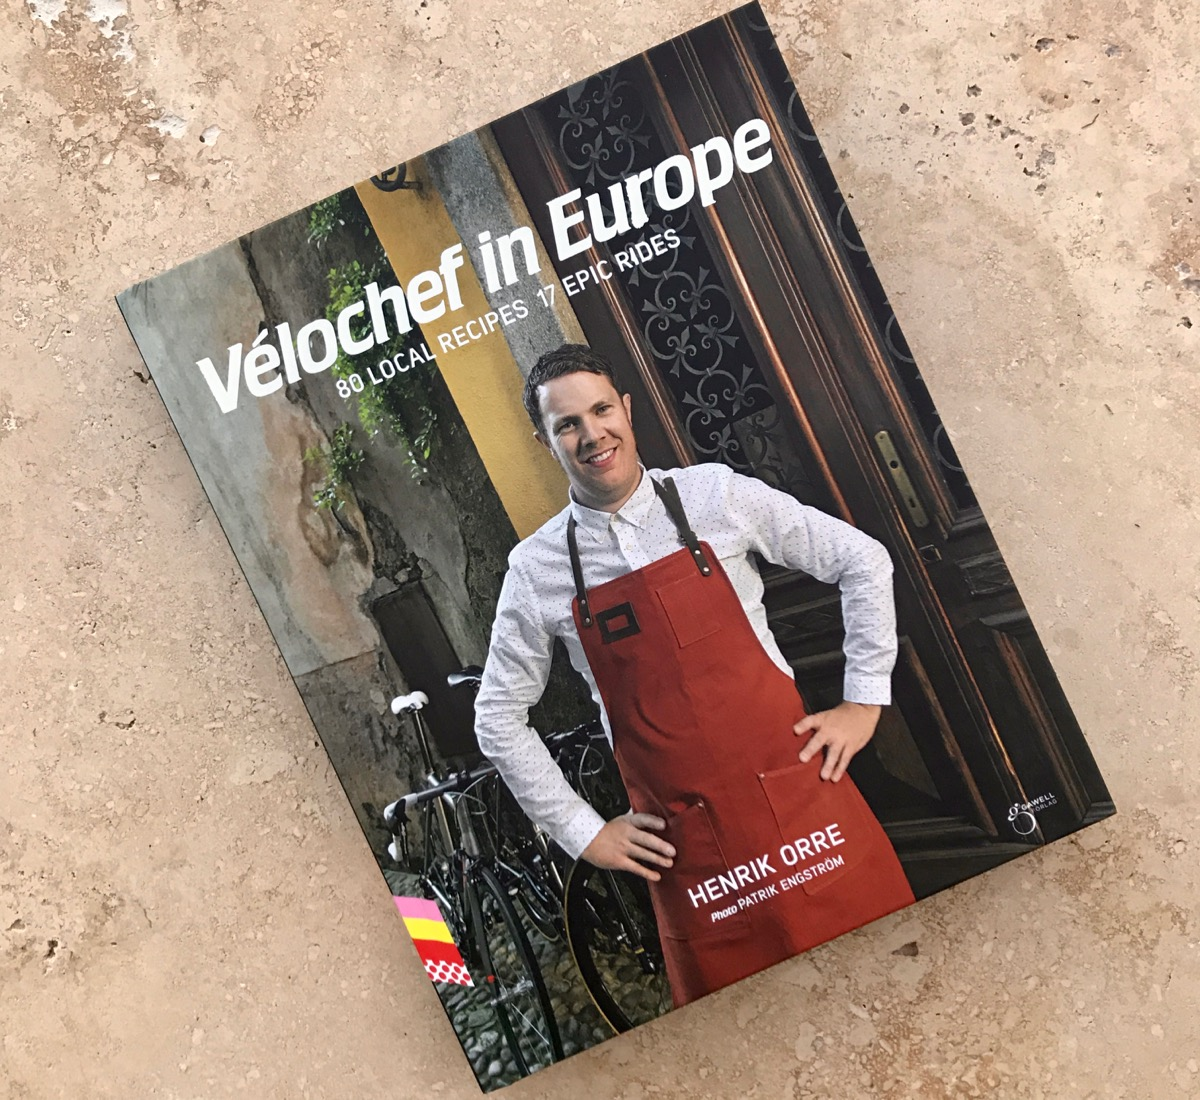 Book Review Henrik Orre Velochef in Europe